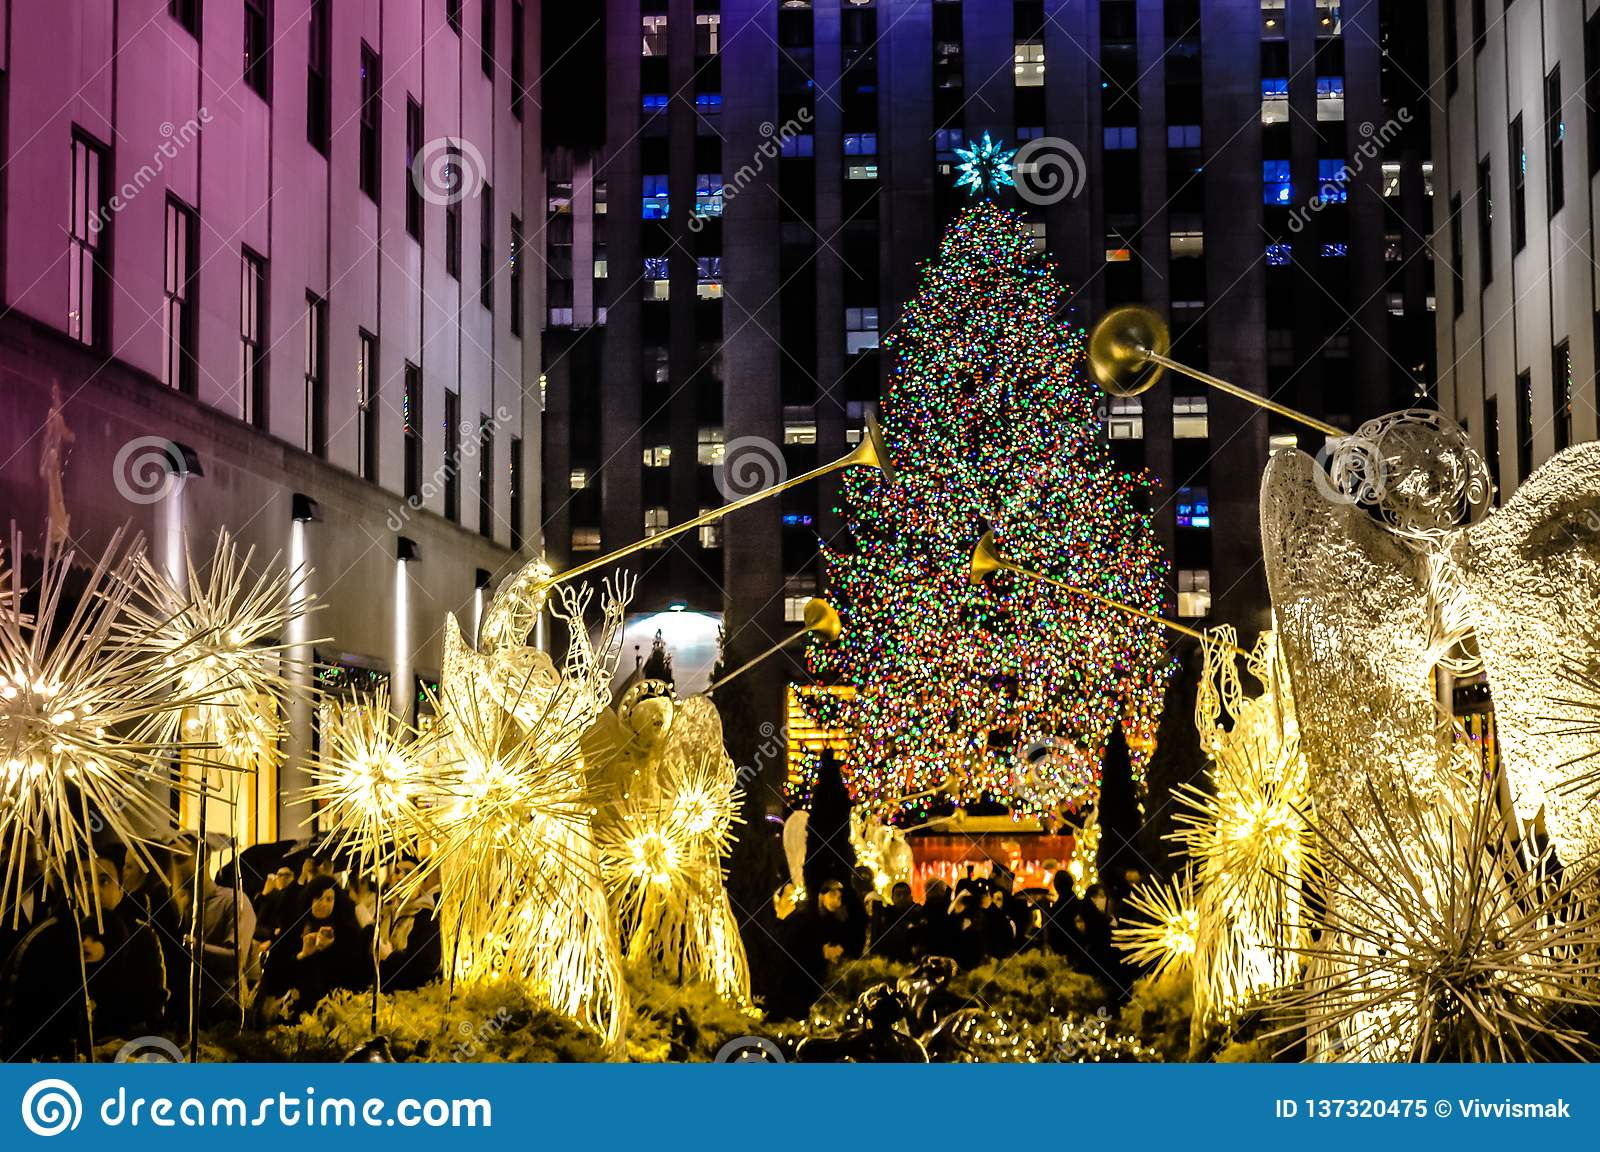 Christmas decorations in front of the Rockefeller center in Manhattan, NYC, USA